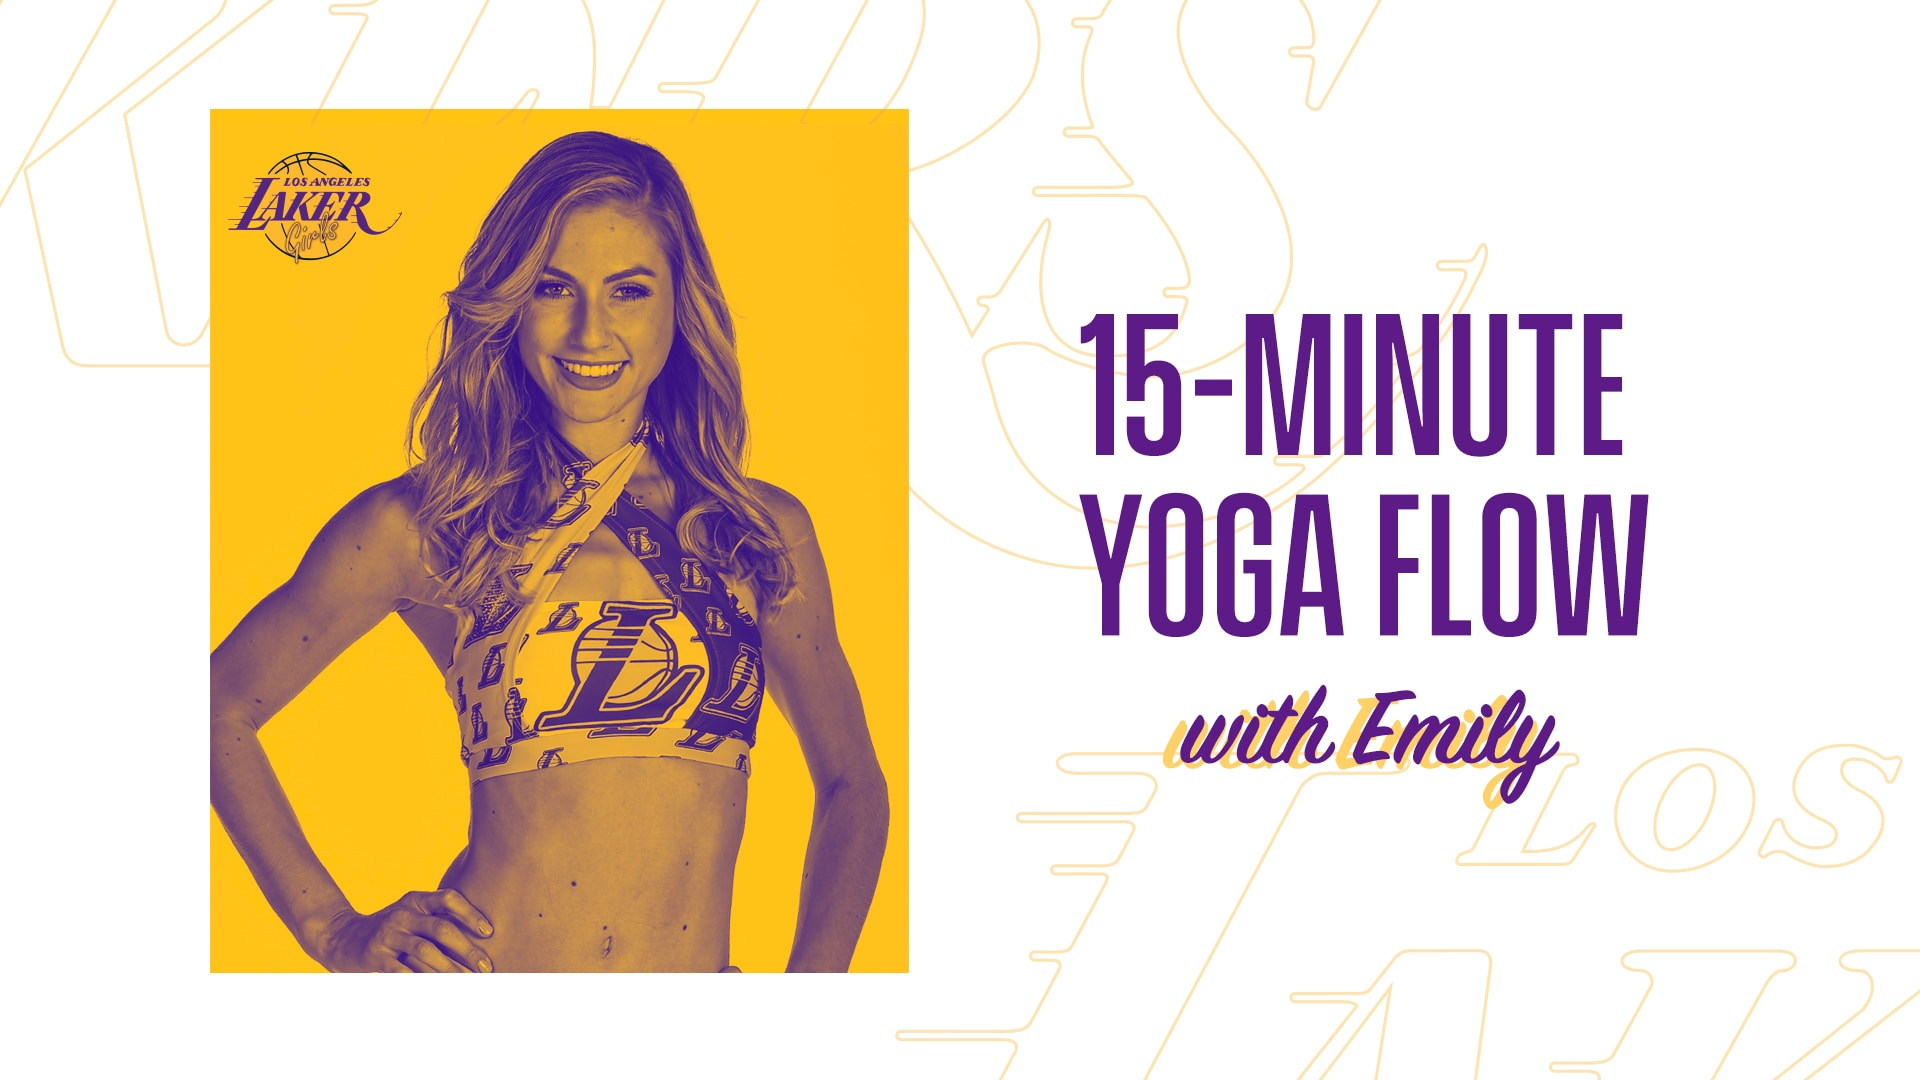 15-Minute Yoga Flow with Emily